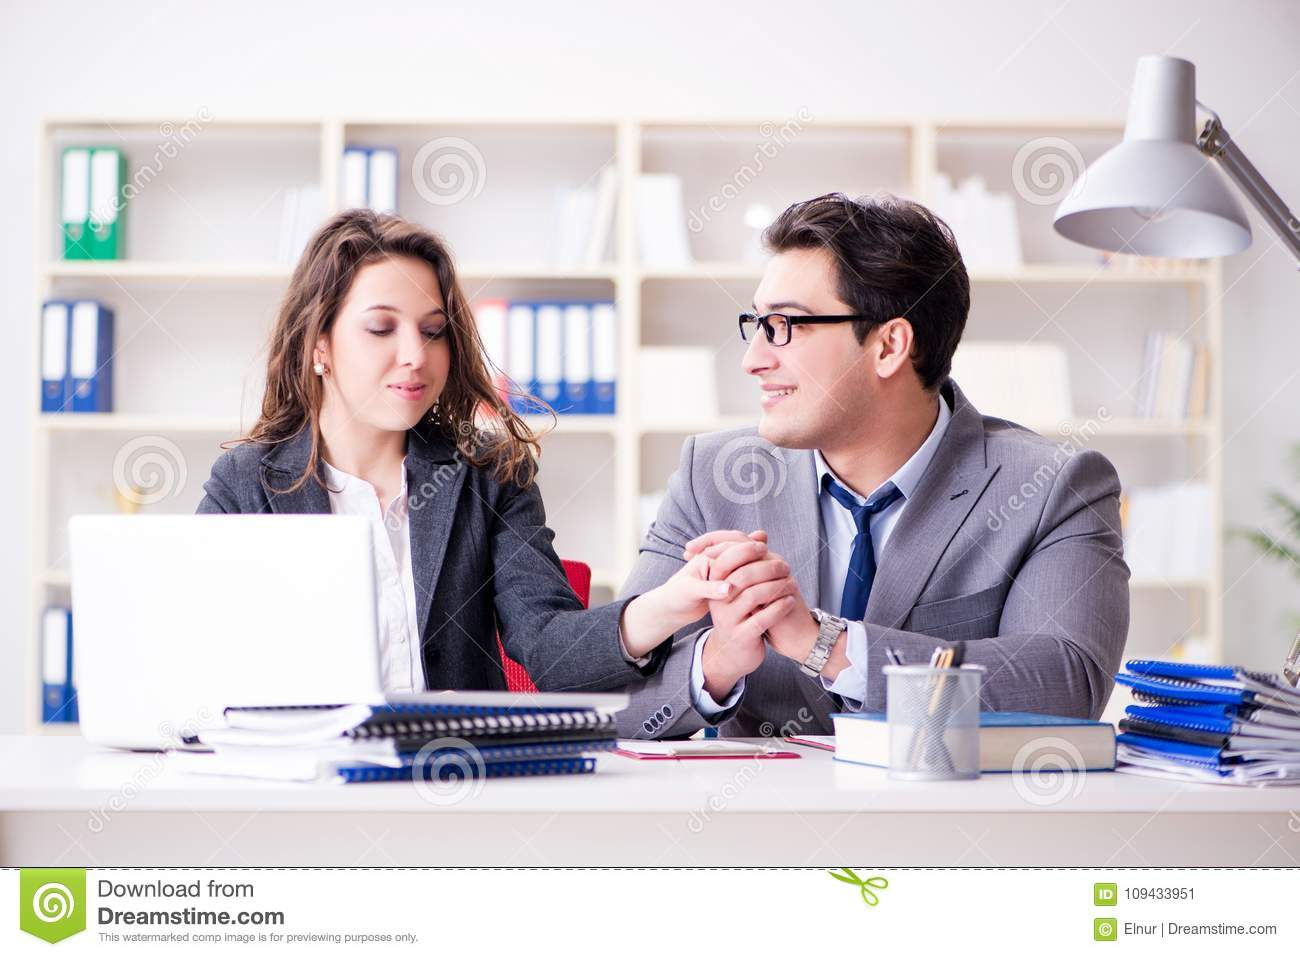 The Happy Couple Working In The Same Office Stock Image